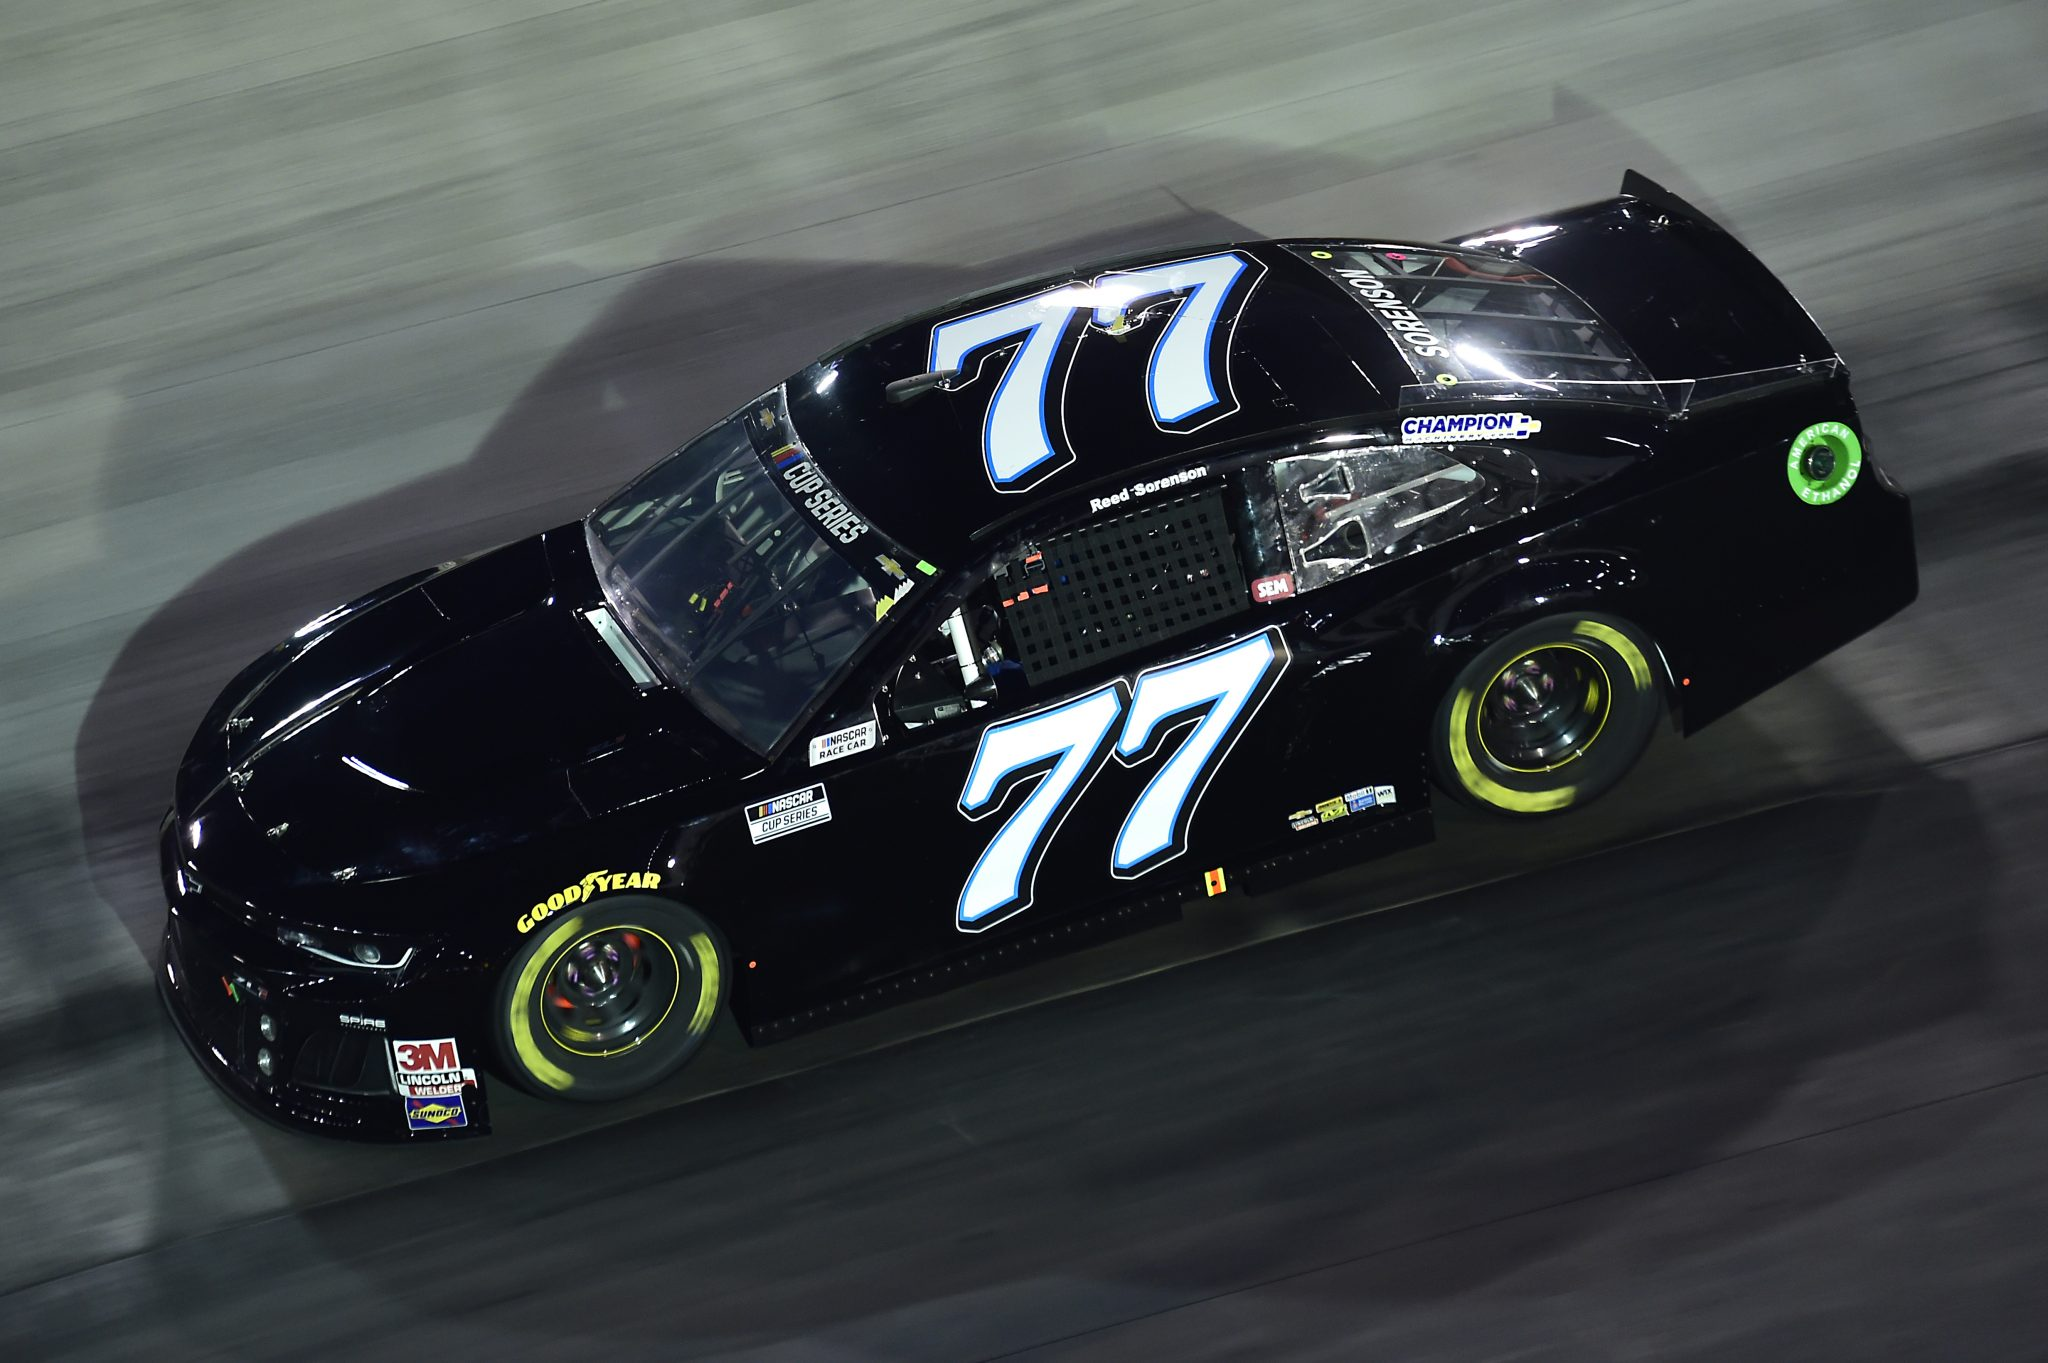 BRISTOL, TENNESSEE - SEPTEMBER 19: Reed Sorenson, driver of the #77 Betterforyourhealth.com Chevrolet, drives during the NASCAR Cup Series Bass Pro Shops Night Race at Bristol Motor Speedway on September 19, 2020 in Bristol, Tennessee. (Photo by Jared C. Tilton/Getty Images) | Getty Images